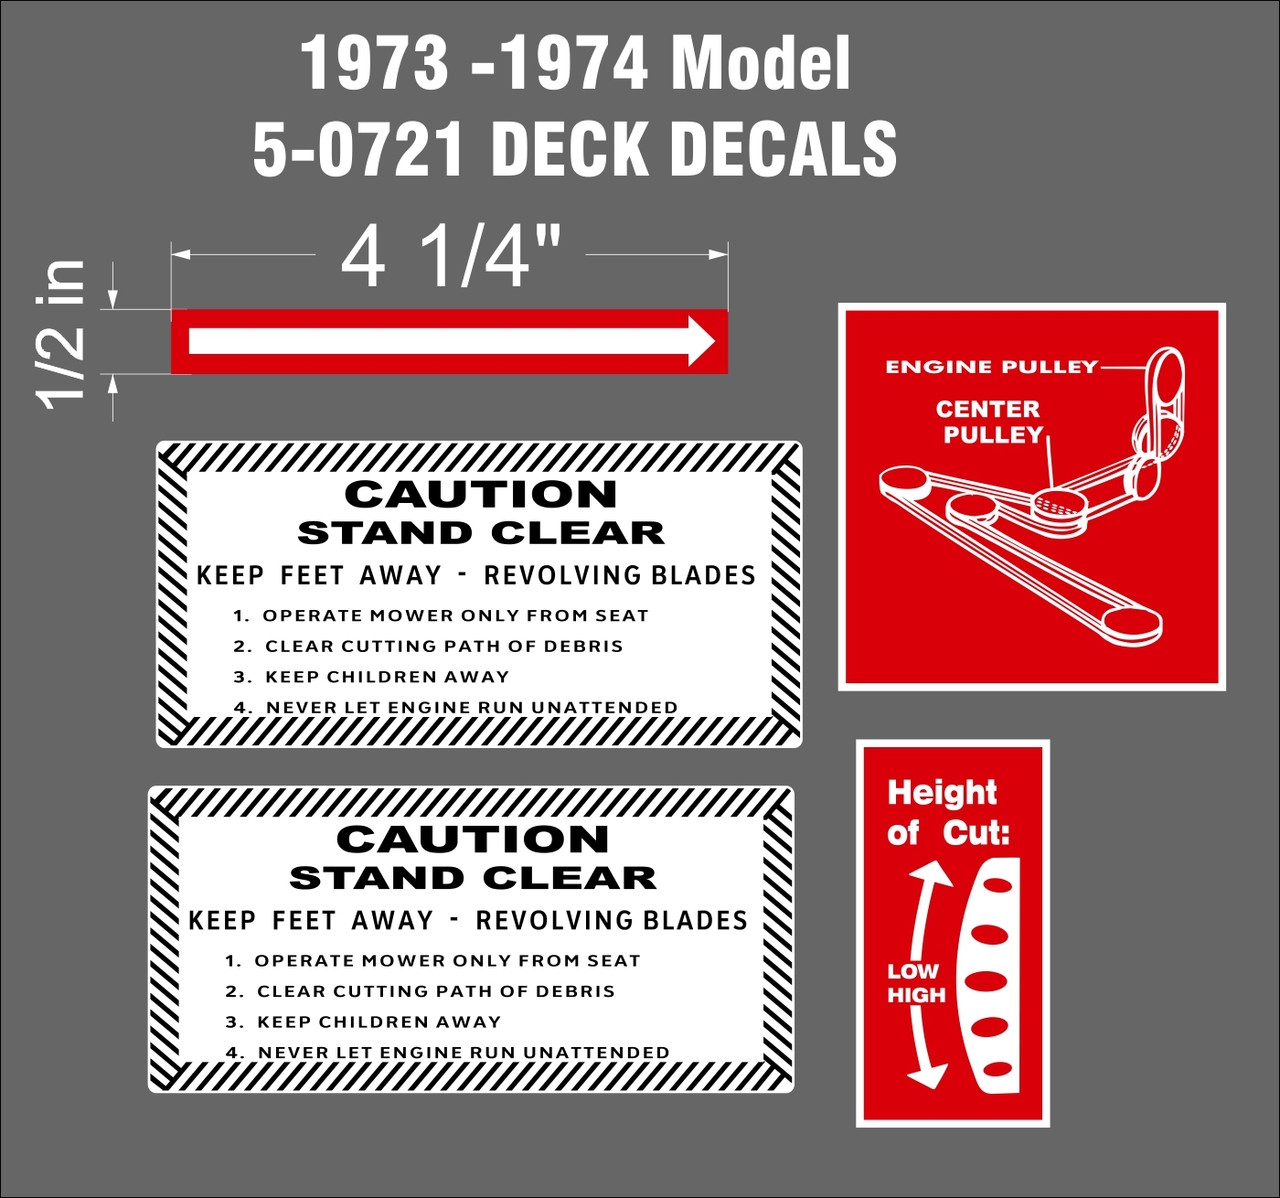 WHEEL HORSE 36 INCH SIDE DISCHARGE DECK DECALS FOR MODEL 5-0721 1973 and  1974